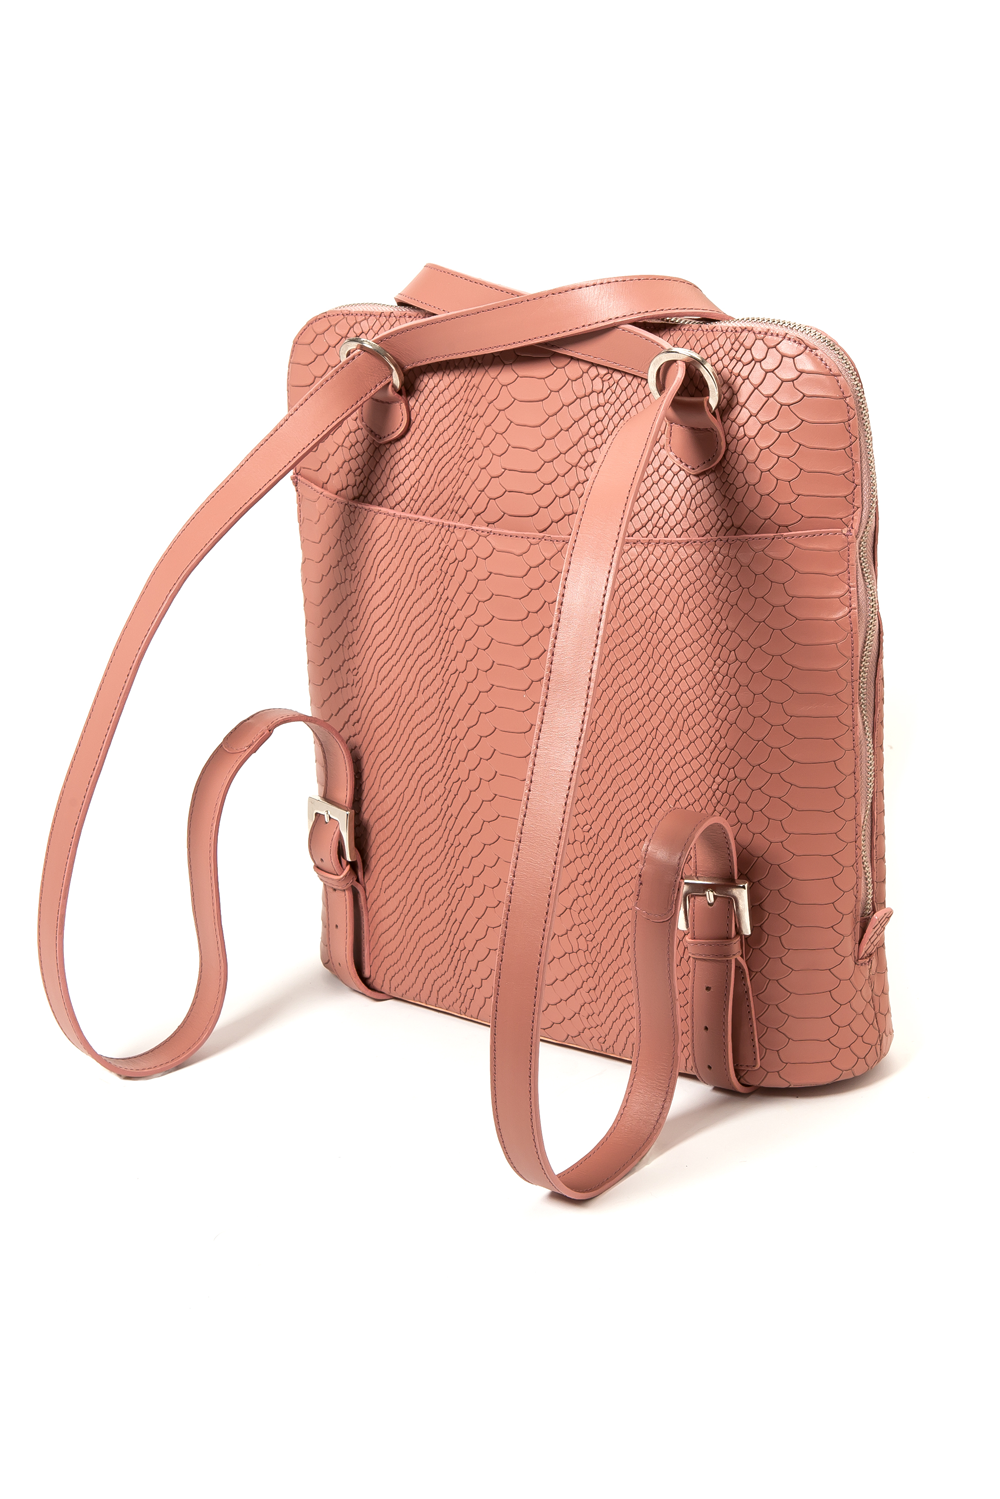 Mel Boteri | Dianne Convertible Tote Backpack | Blush Snake-Effect Leather | Backpack